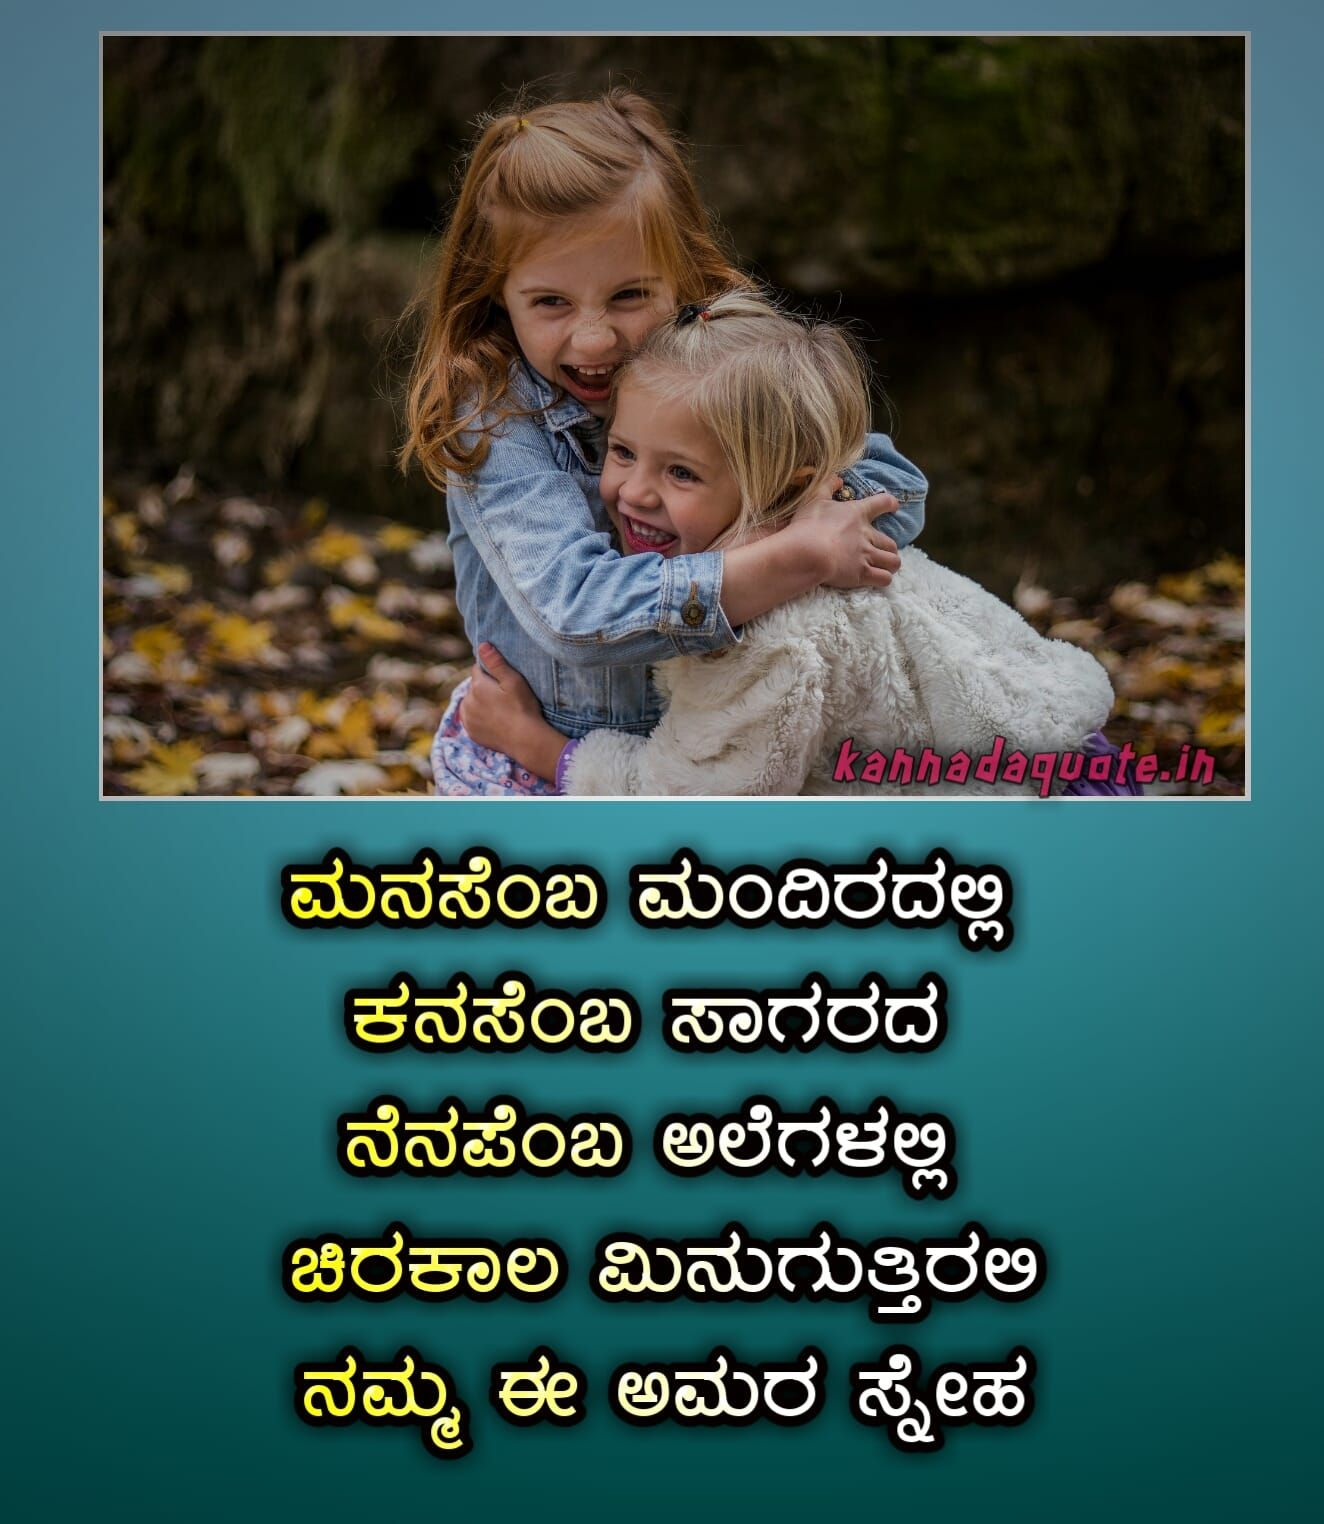 Best Friendship Quotes In Kannada Short Friendship Quotes Friendship Quotes Meaningful Friendship Quotes